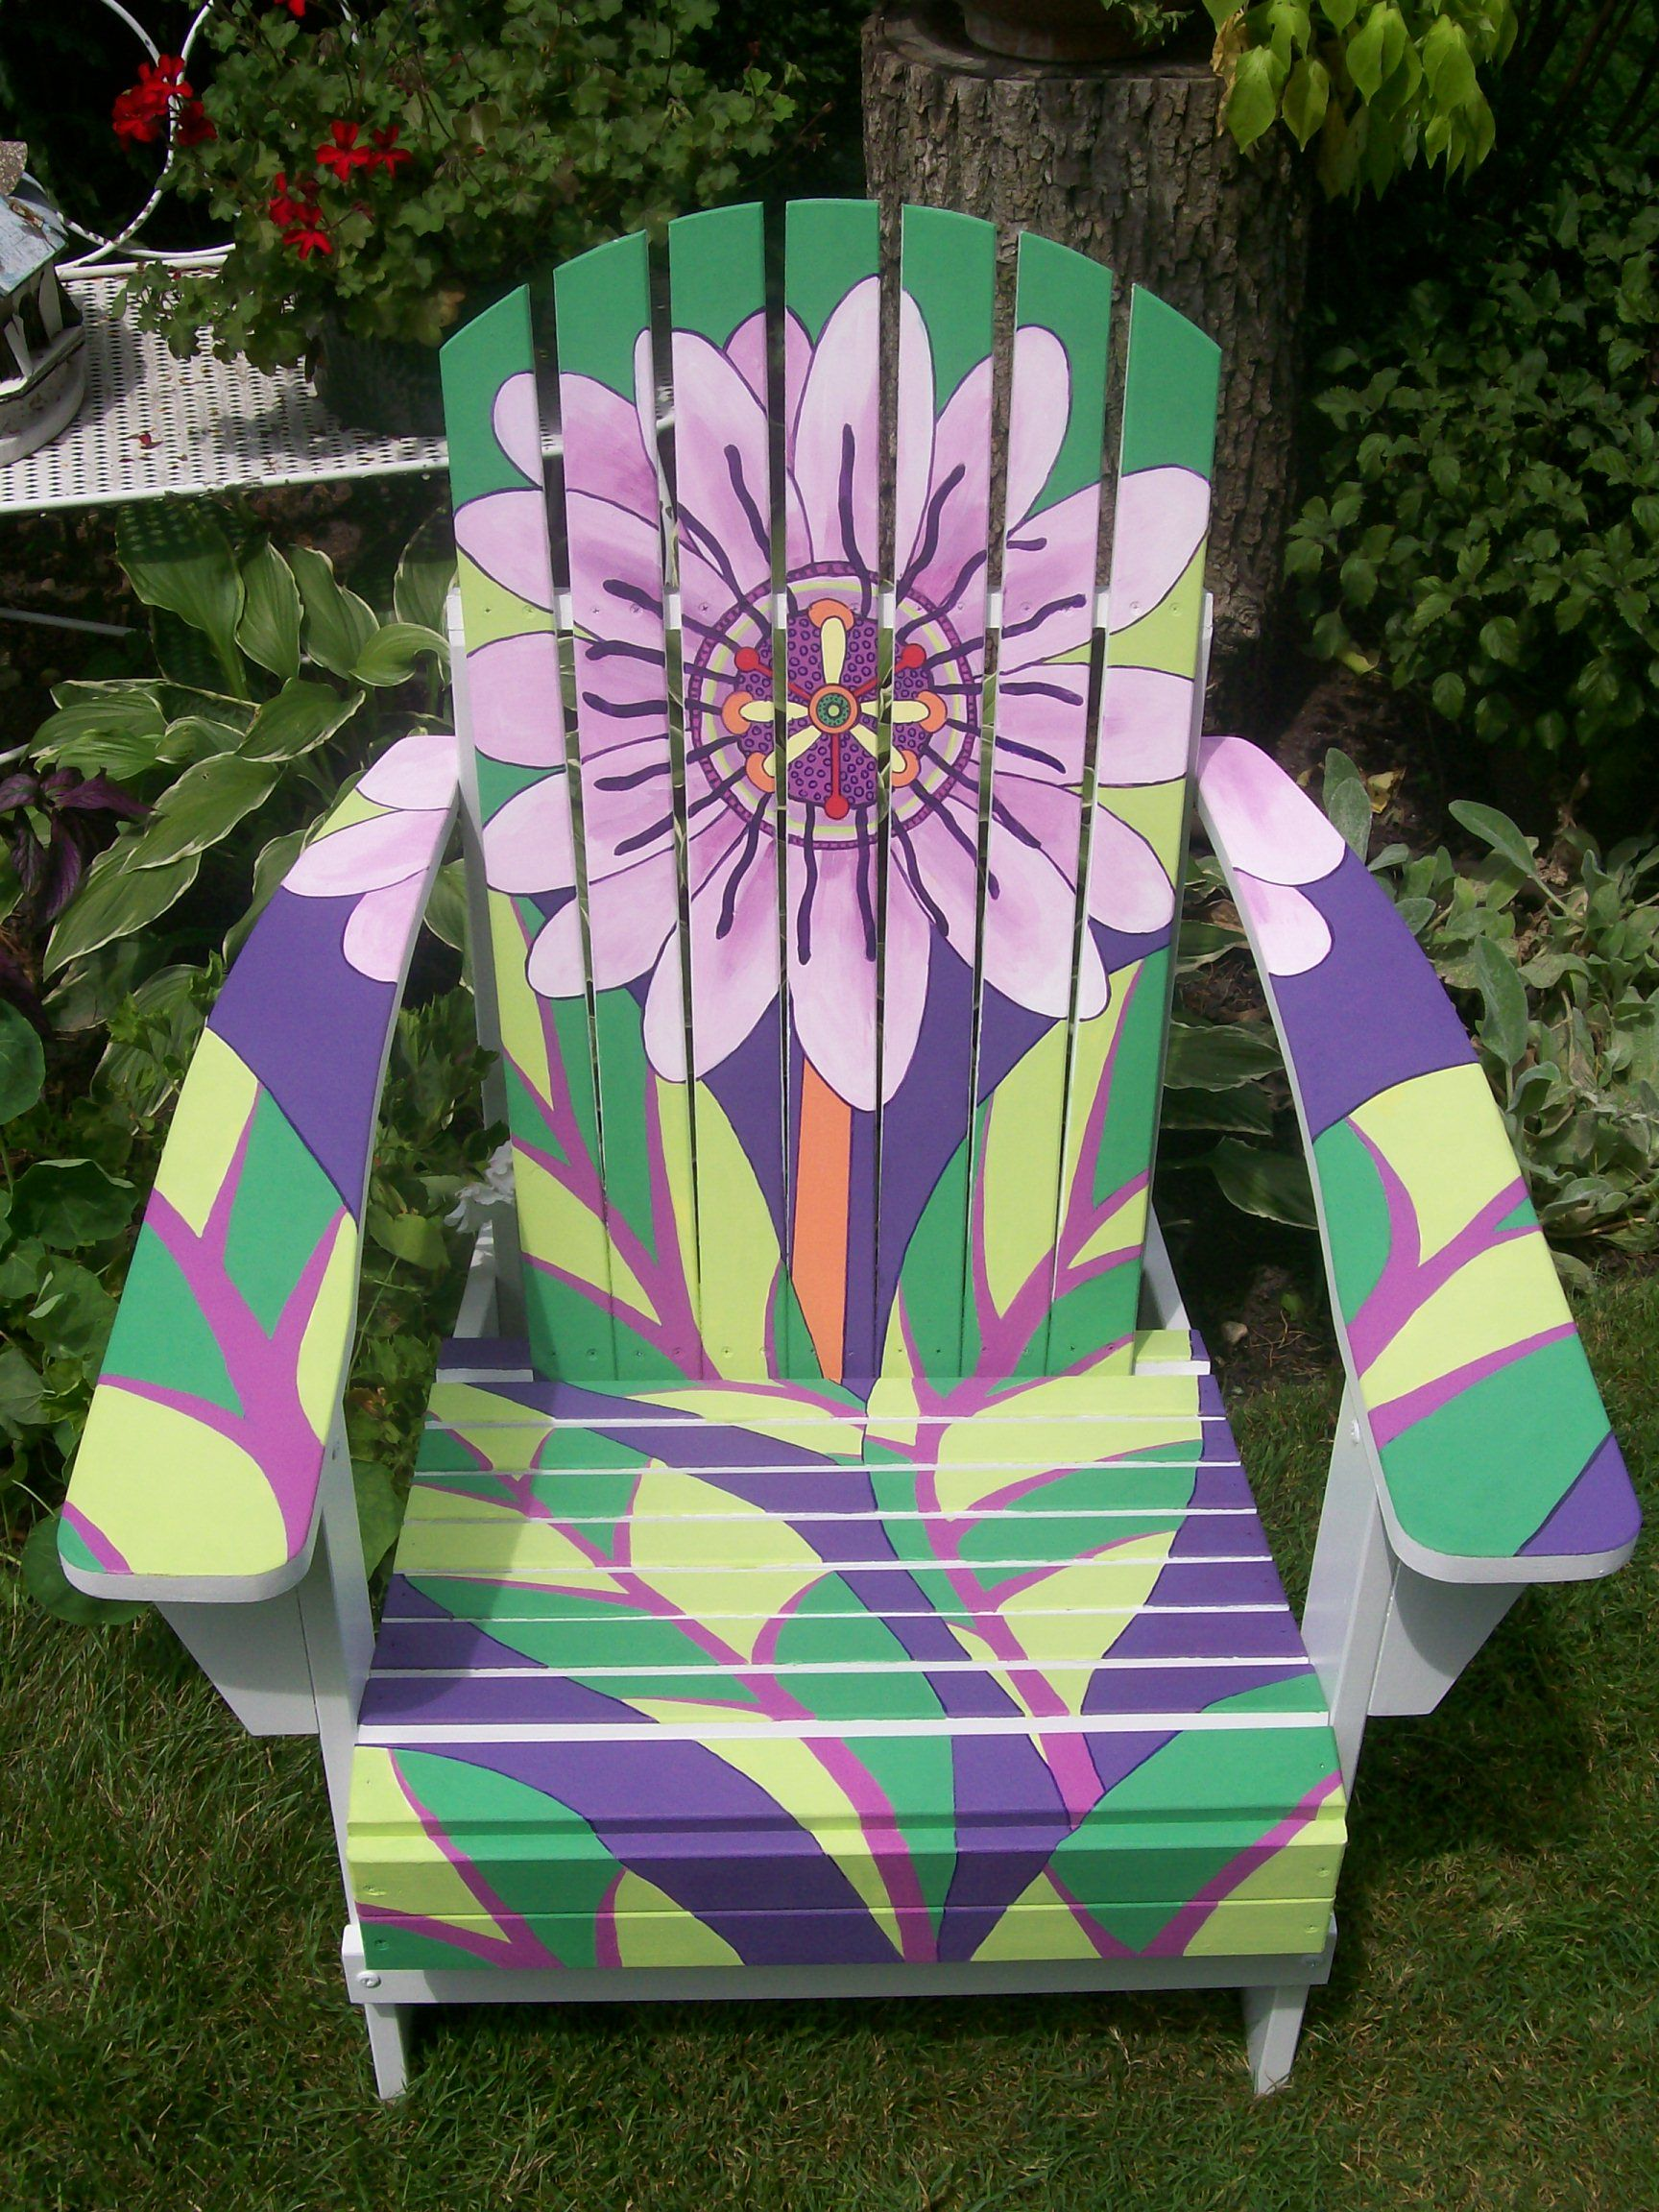 Image Detail for Adirondack Chair Adorned with Art Deco Motif